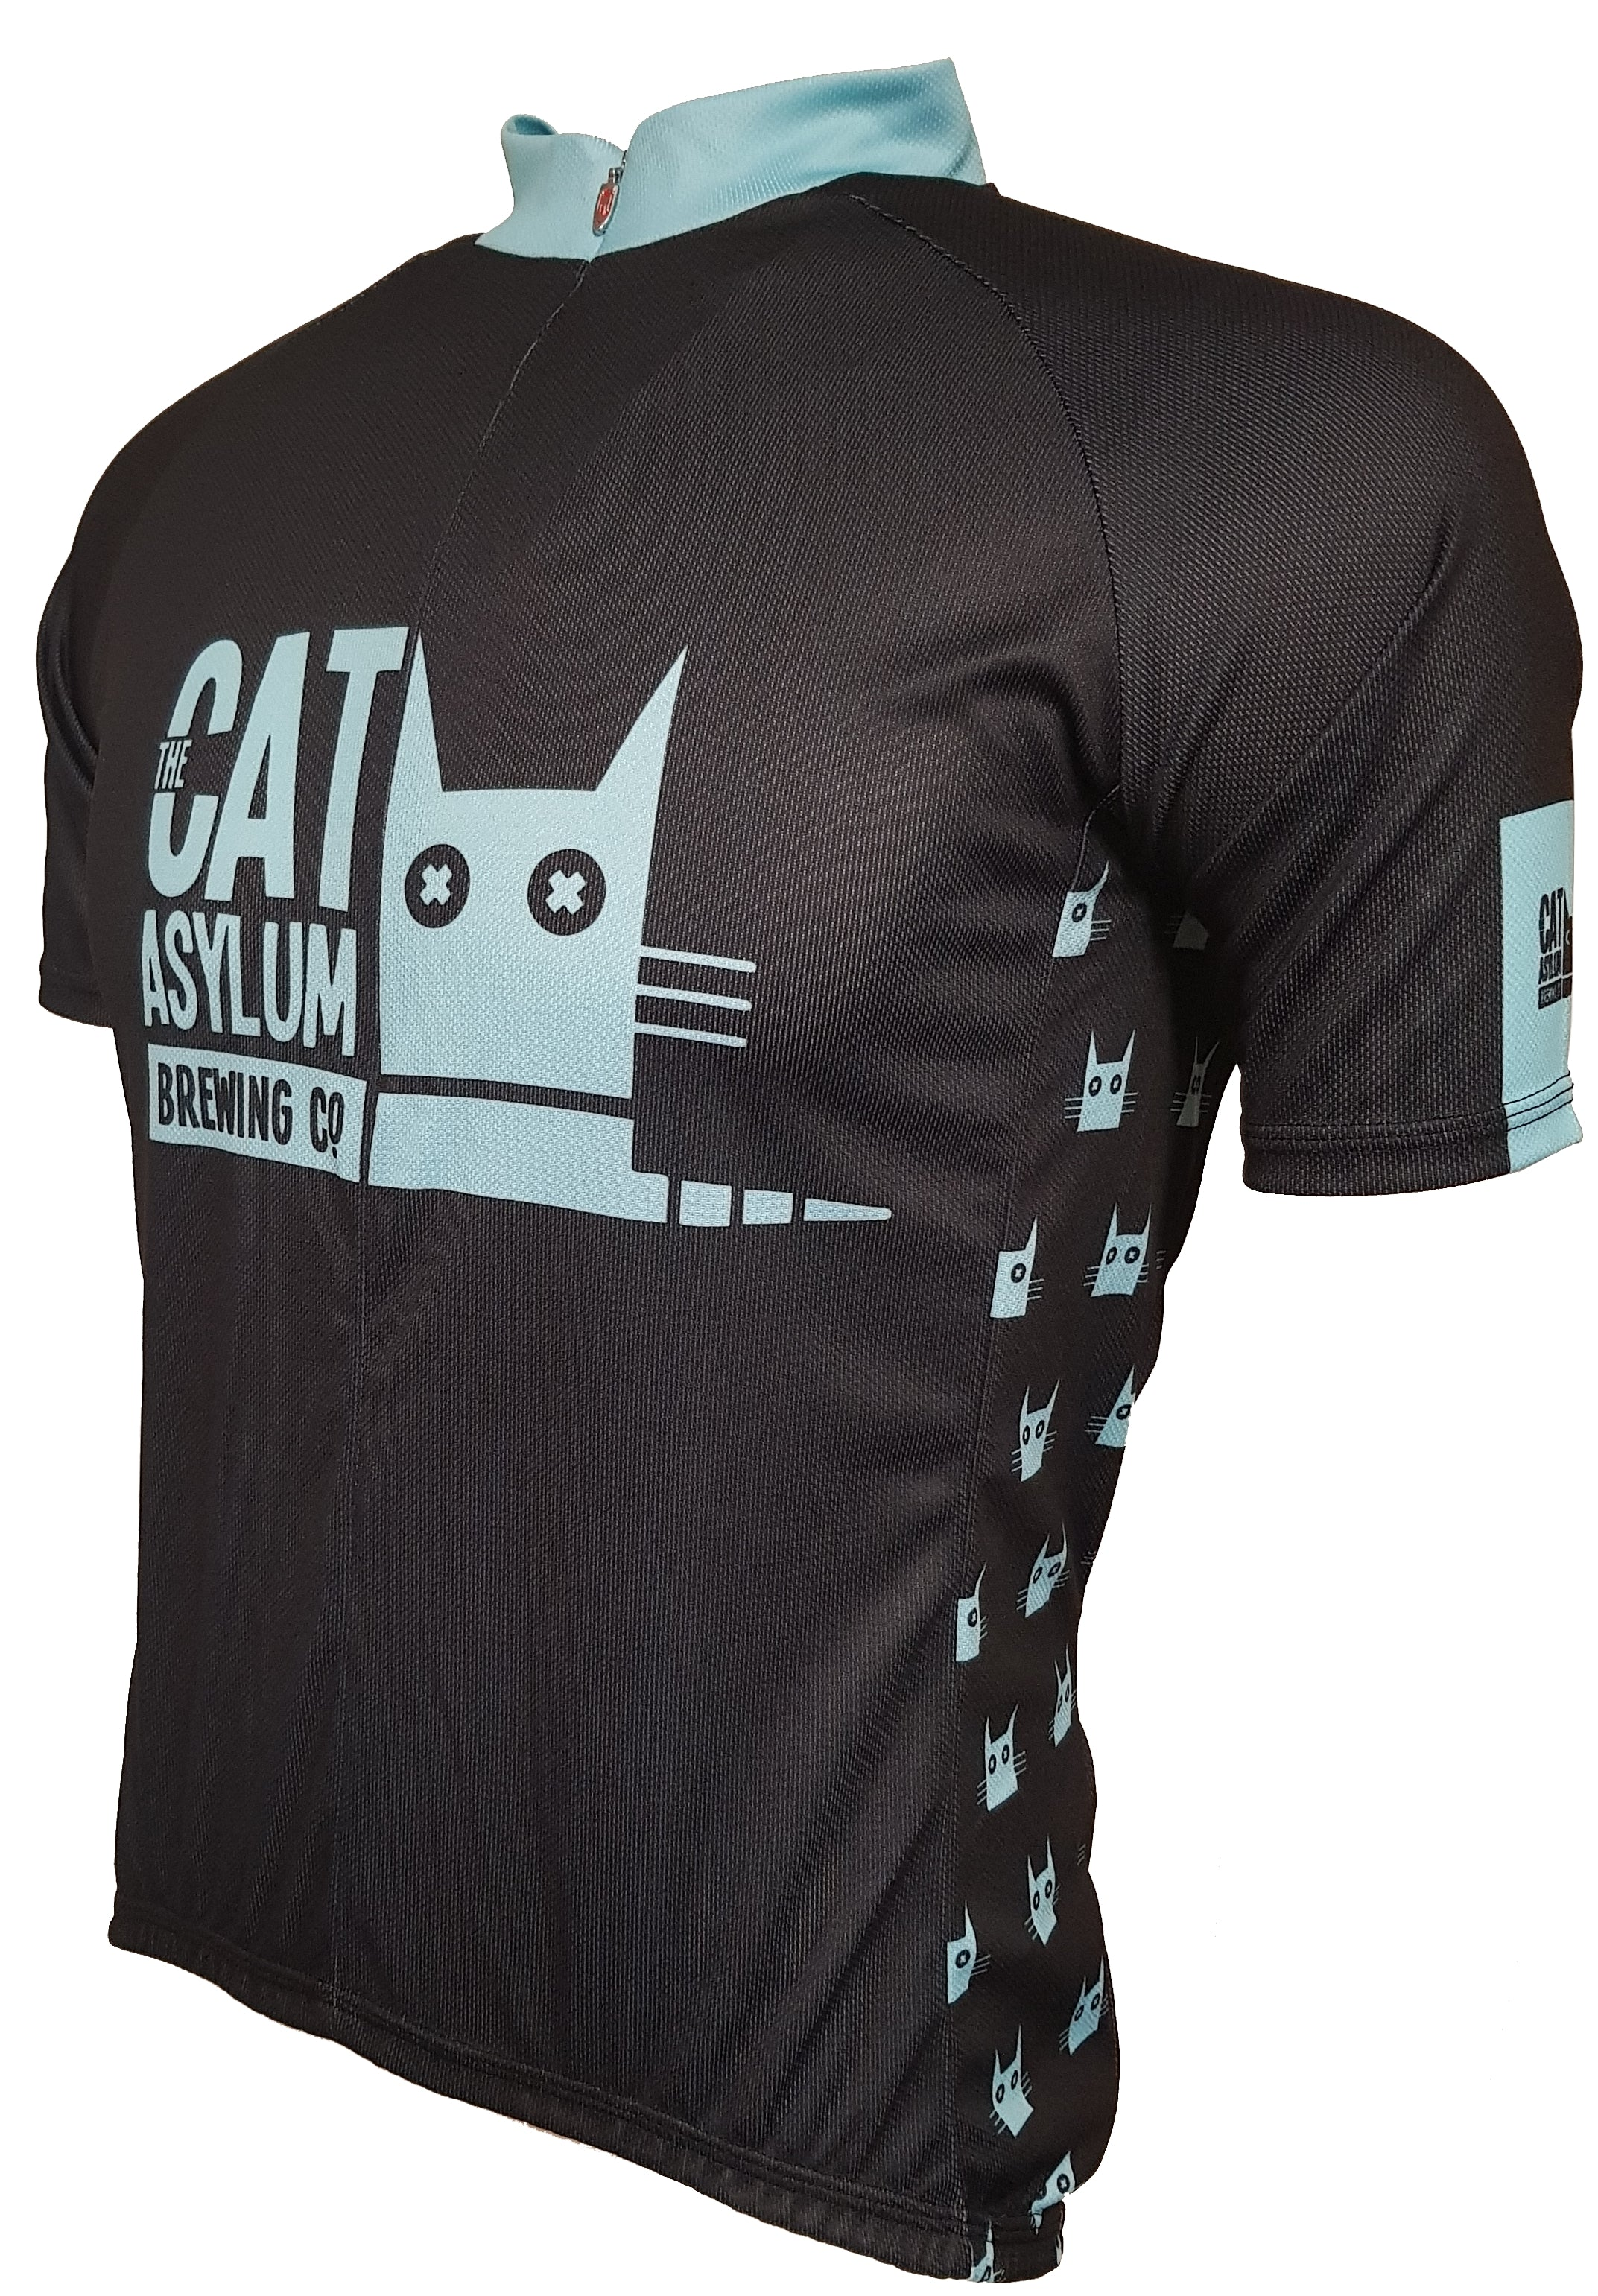 Cat Asylum Enduro Cycling Jersey Front